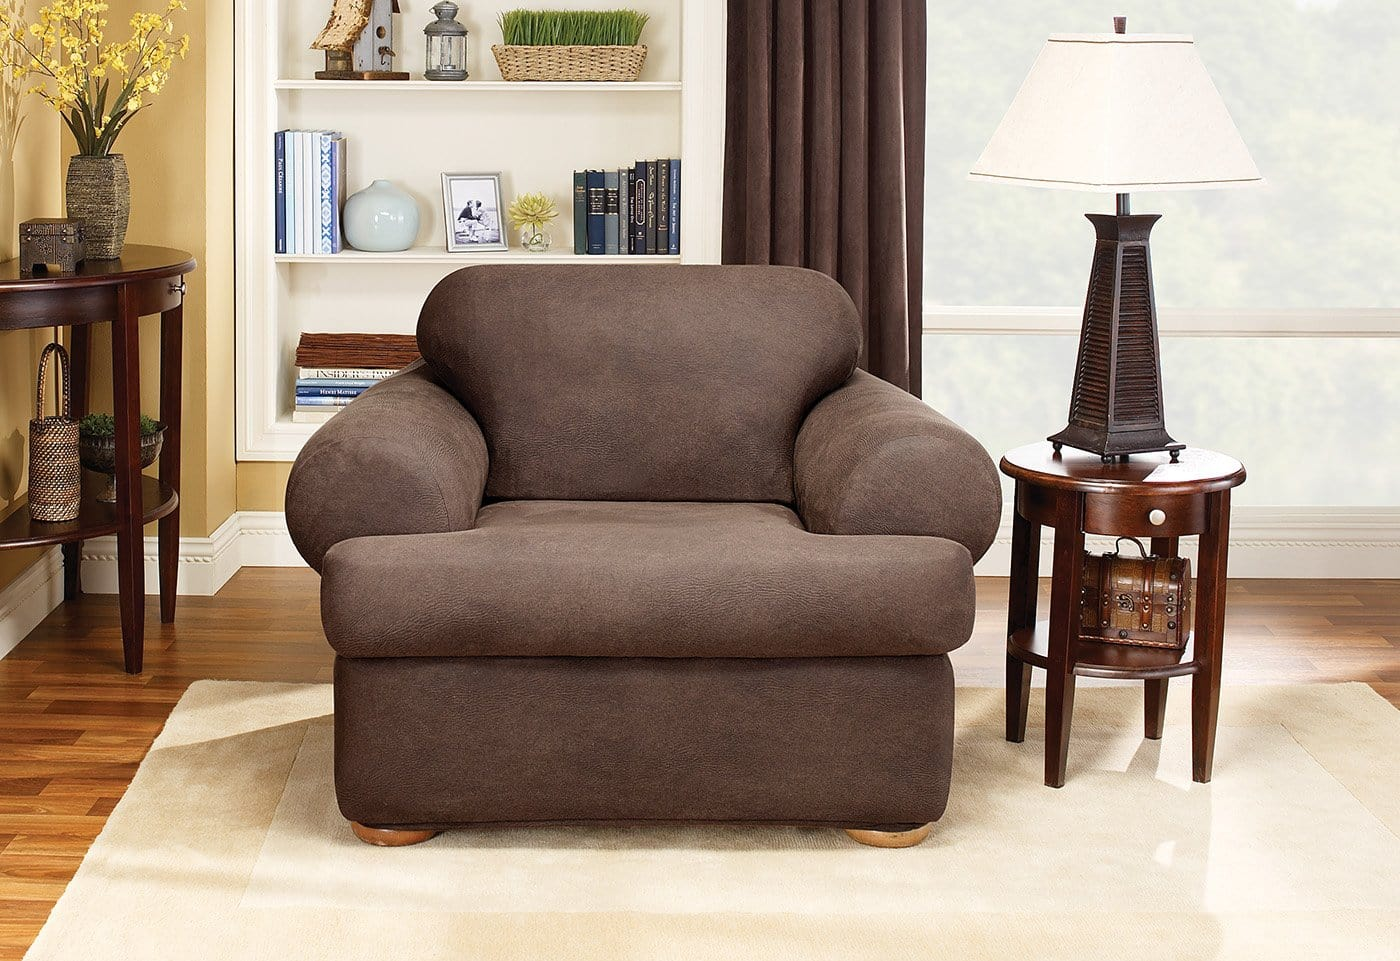 sure cheap for furniture loveseat orange fit fitted stretch ideas lovely in slipcovers target cover covers settee s reclining cozy sofa brown slipcover home couch